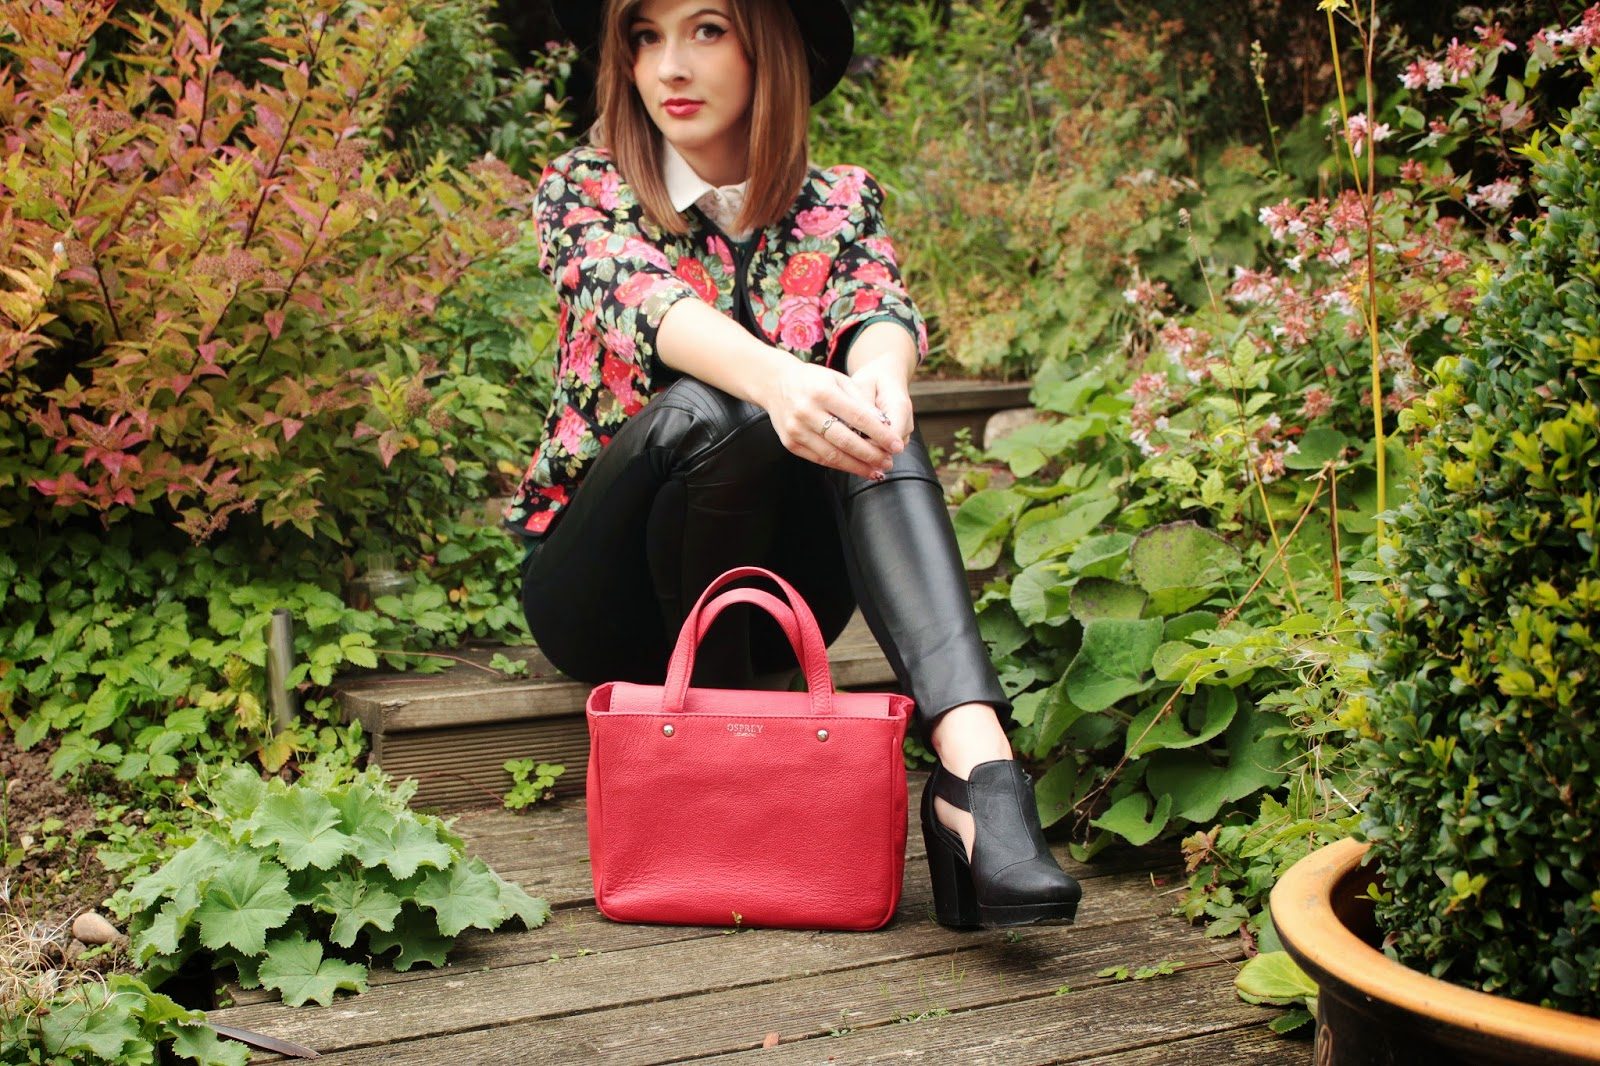 uk fashion blogger styles winter florals